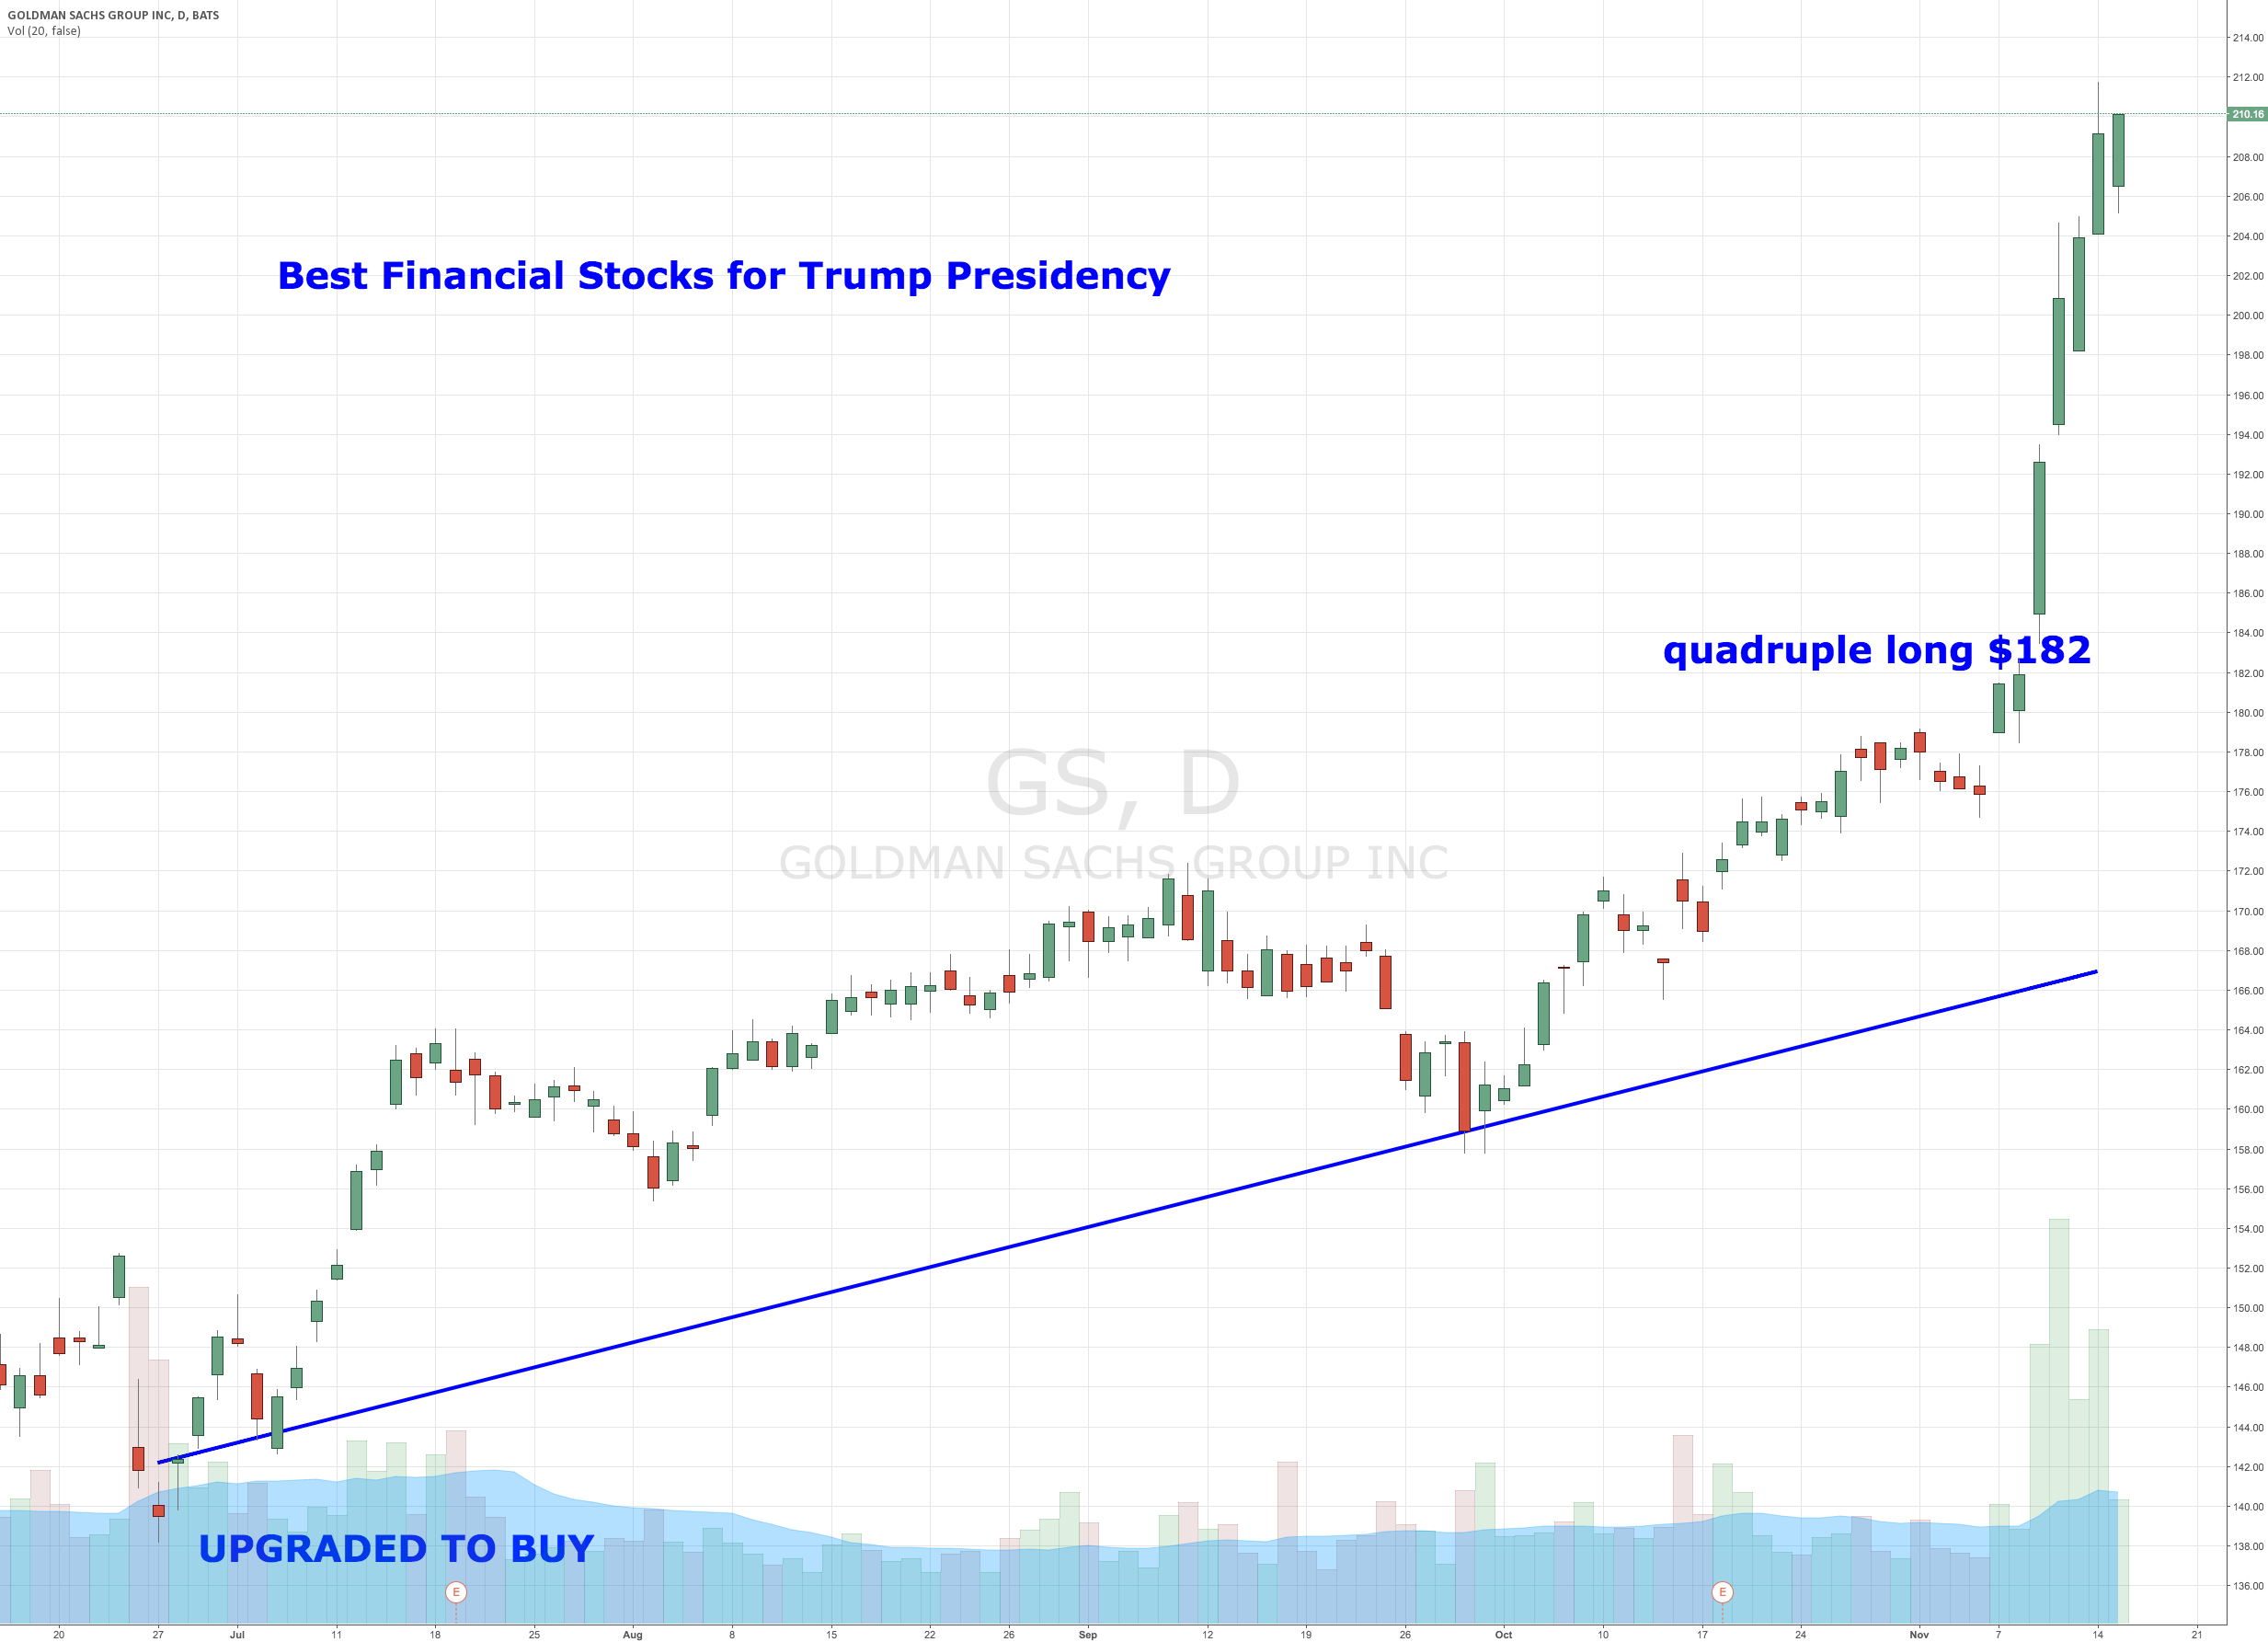 Best Financial Stocks for Trump Presidency